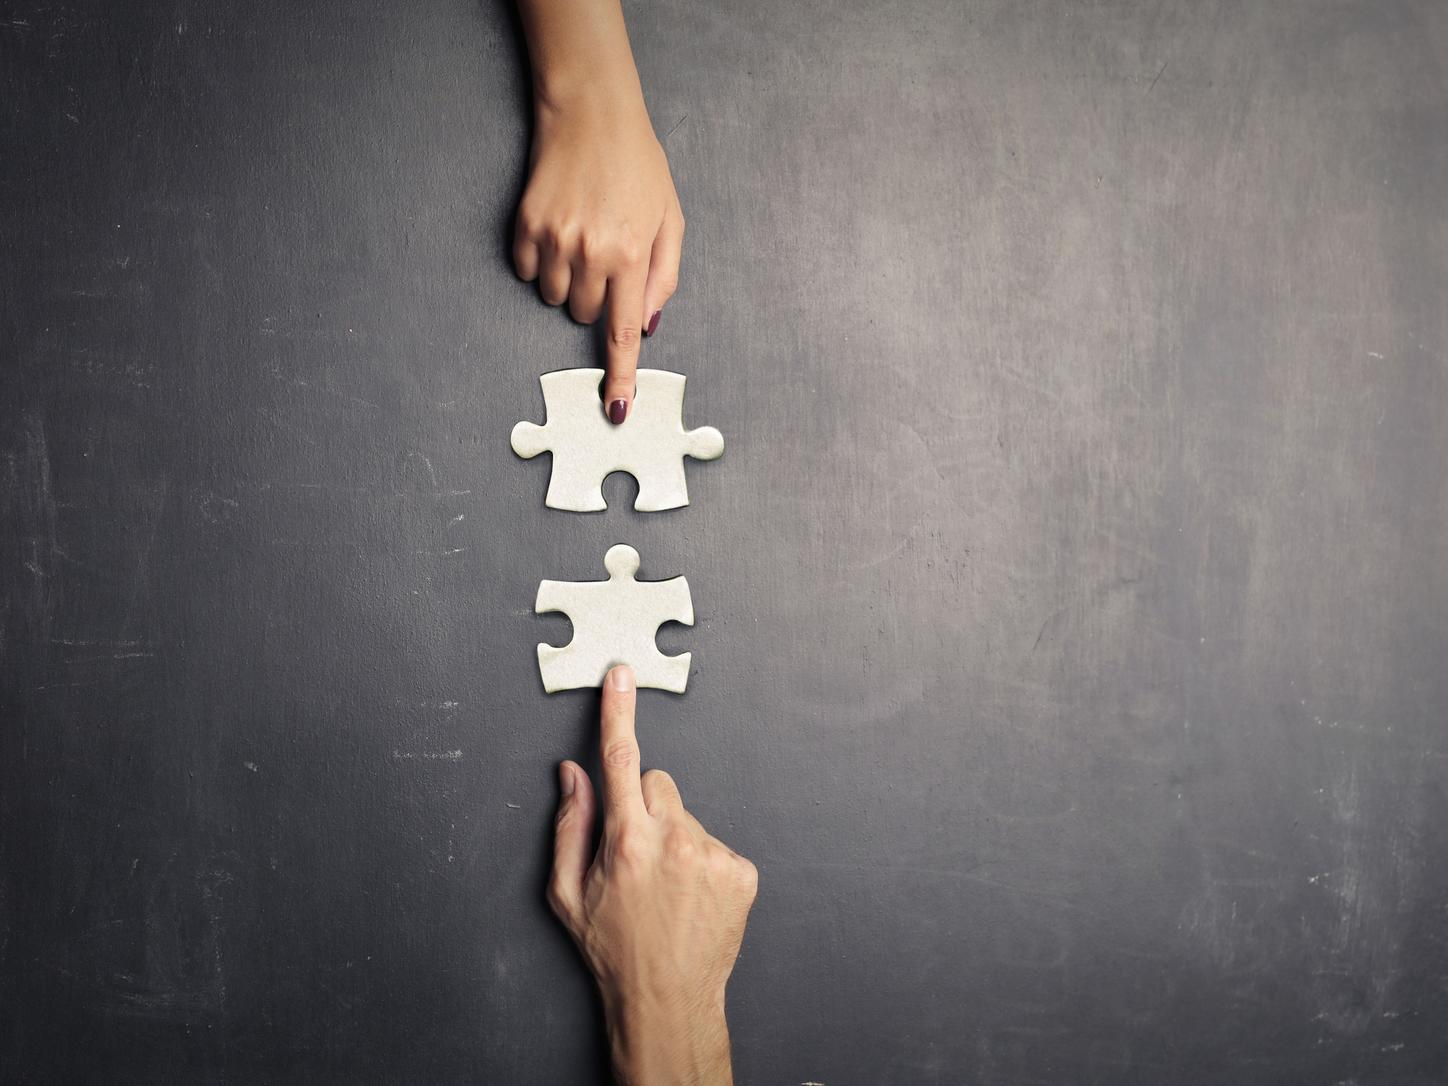 Putting 2 pieces of a puzzle together to solve a problem